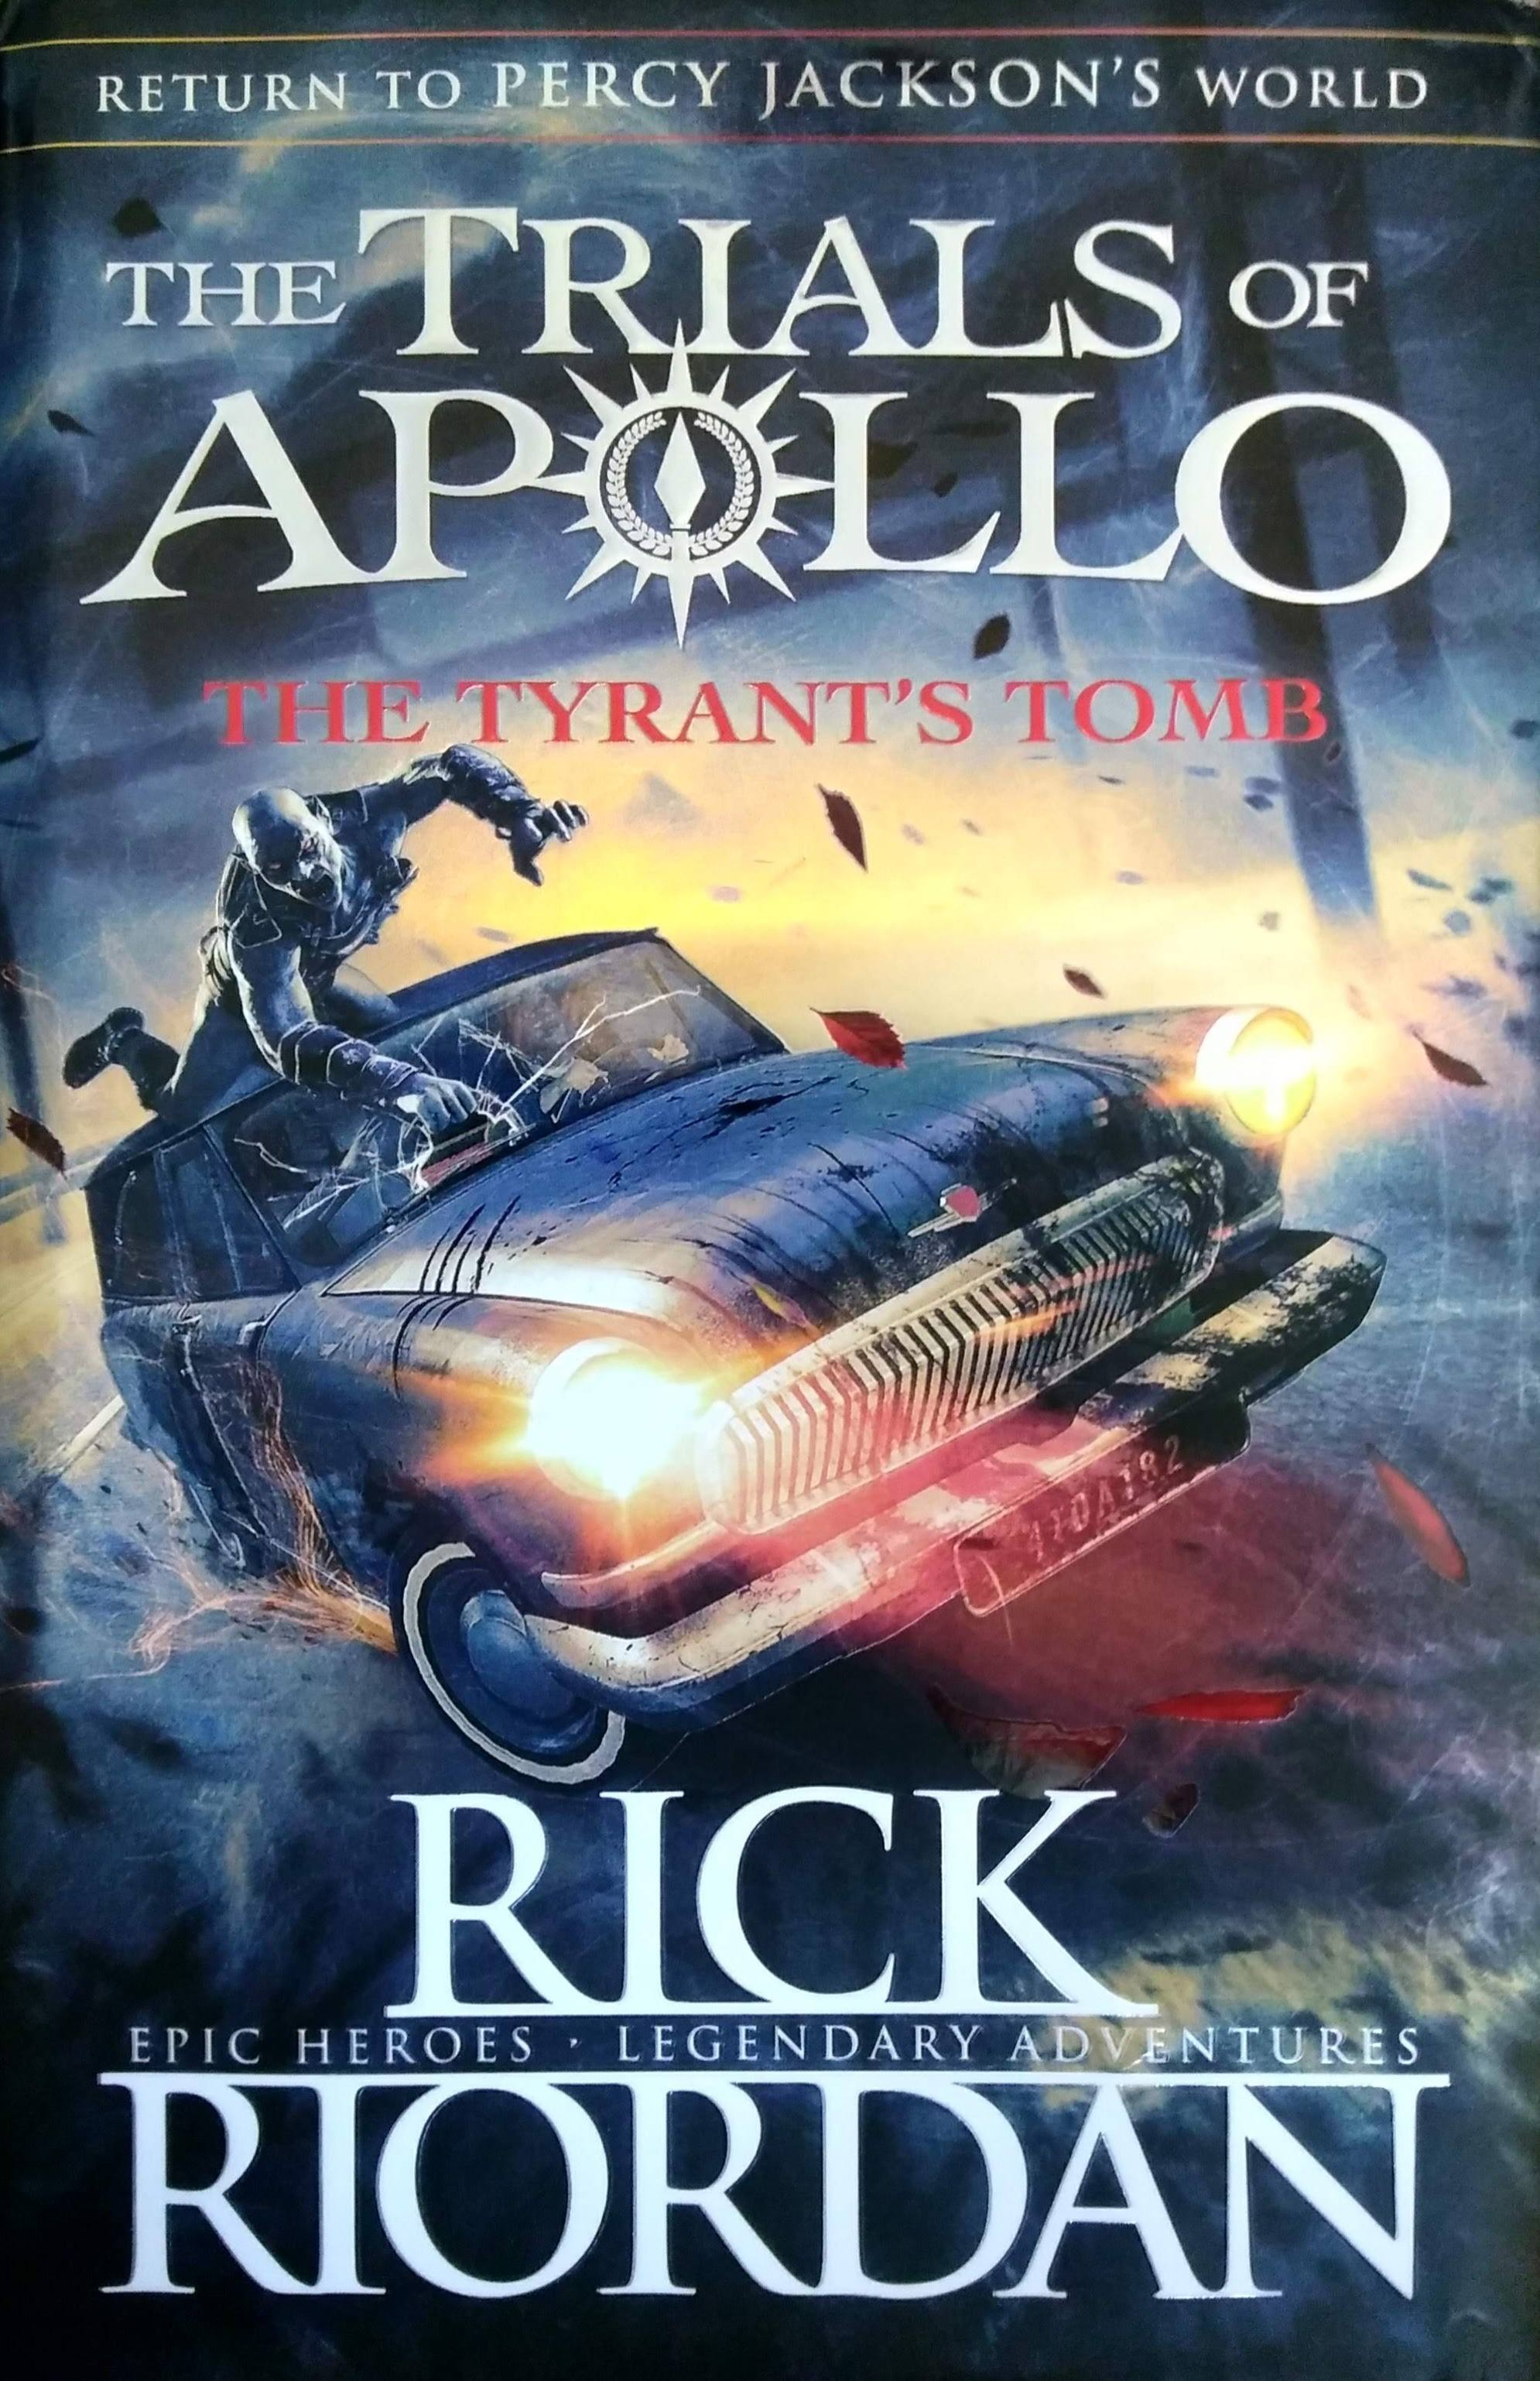 Rick Riordan Trials of Apollo - Cover of latest Rick Riordan book - The Trials of Apollo: The Tyrant's Tomb - feature image for full guide to Rick Riordan series in order - Rick Riordan all books